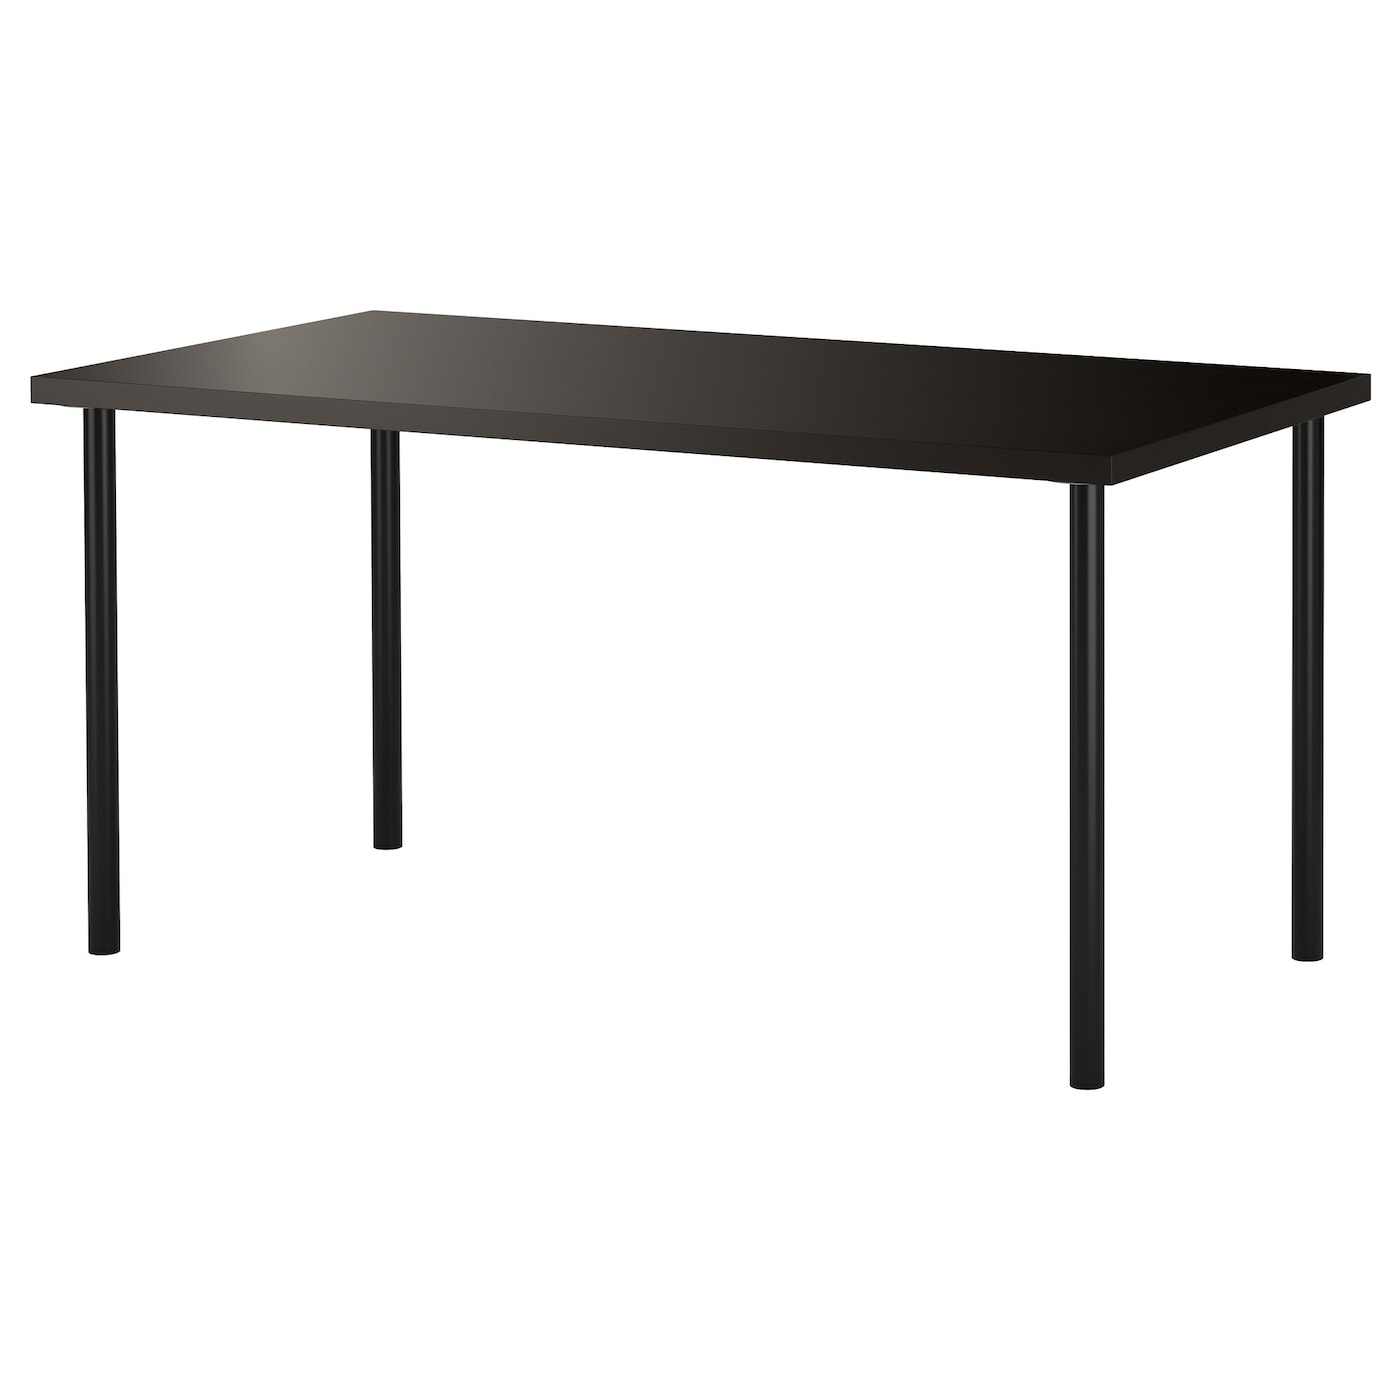 Adils linnmon table black brown black 150x75 cm ikea for Ikea desk black